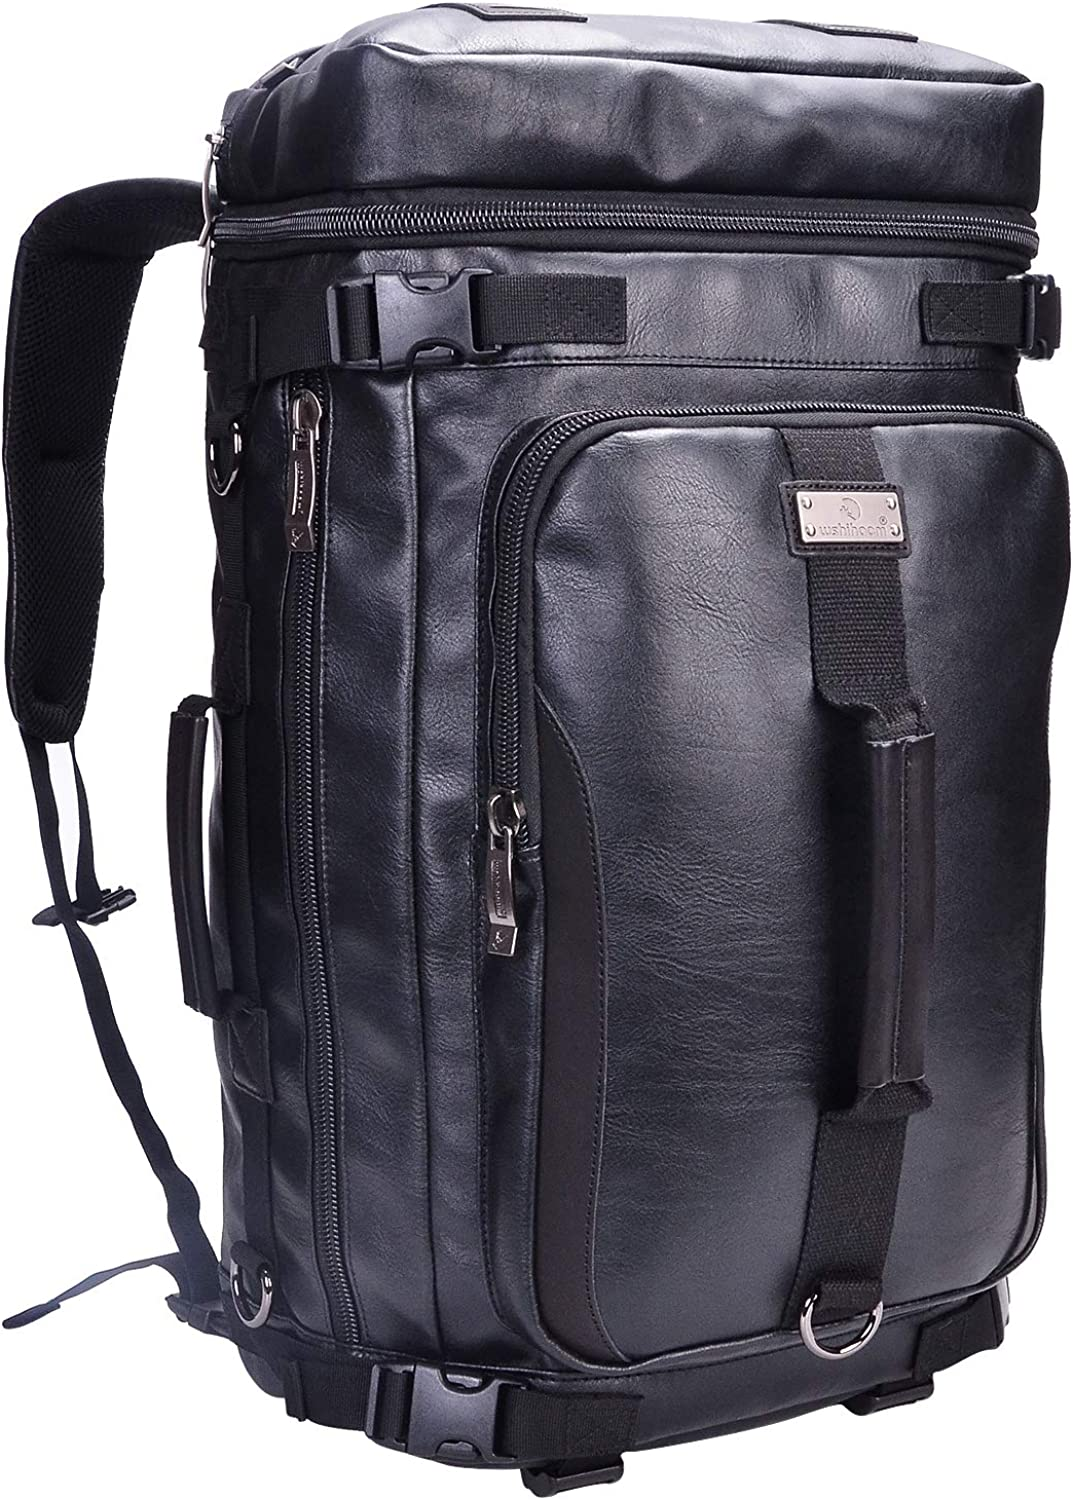 Wshihaom Canvas Rucksack Laptop Travel Backpack Outdoor Hiking Daypack